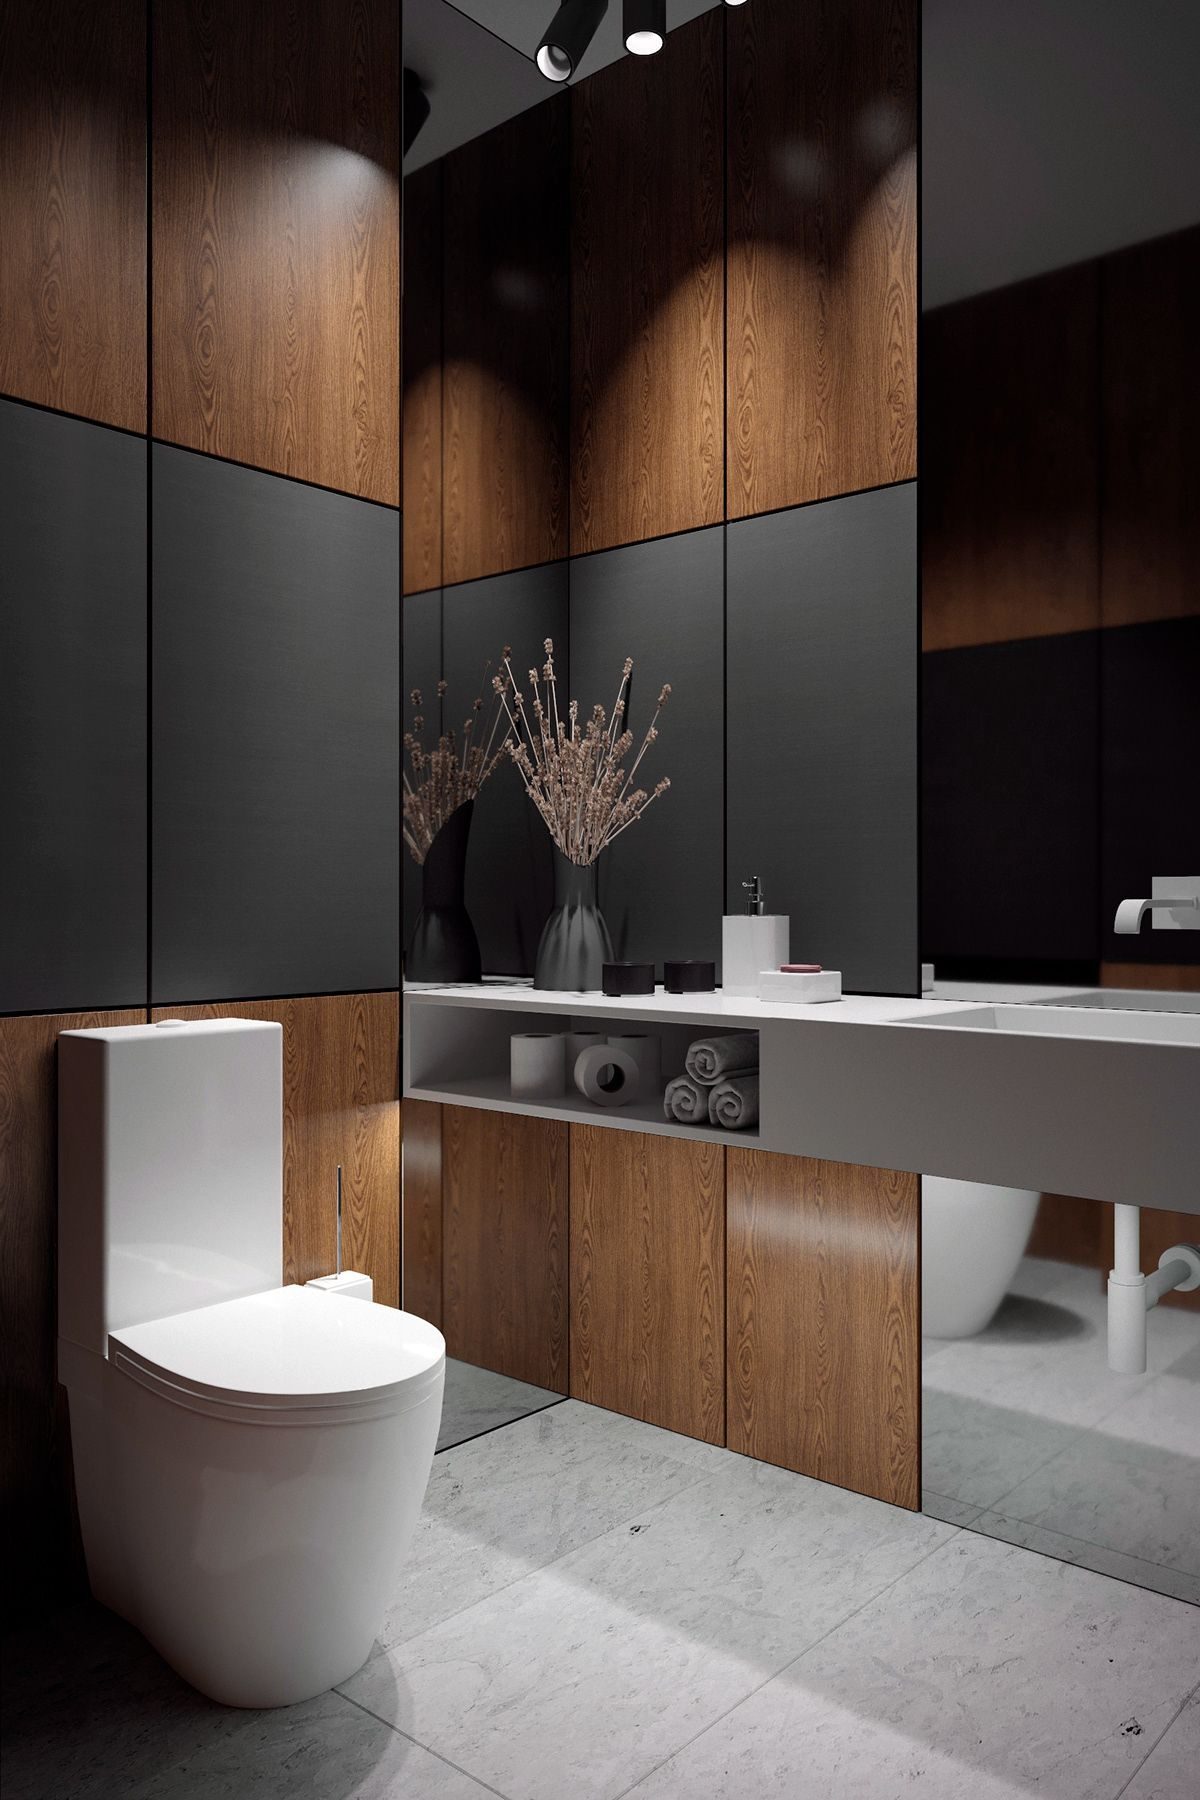 Pin By Aedrees Ahmadi On Bad In 2020 With Images Toilet Design Modern Bathroom Interior Design Modern Bathroom Design